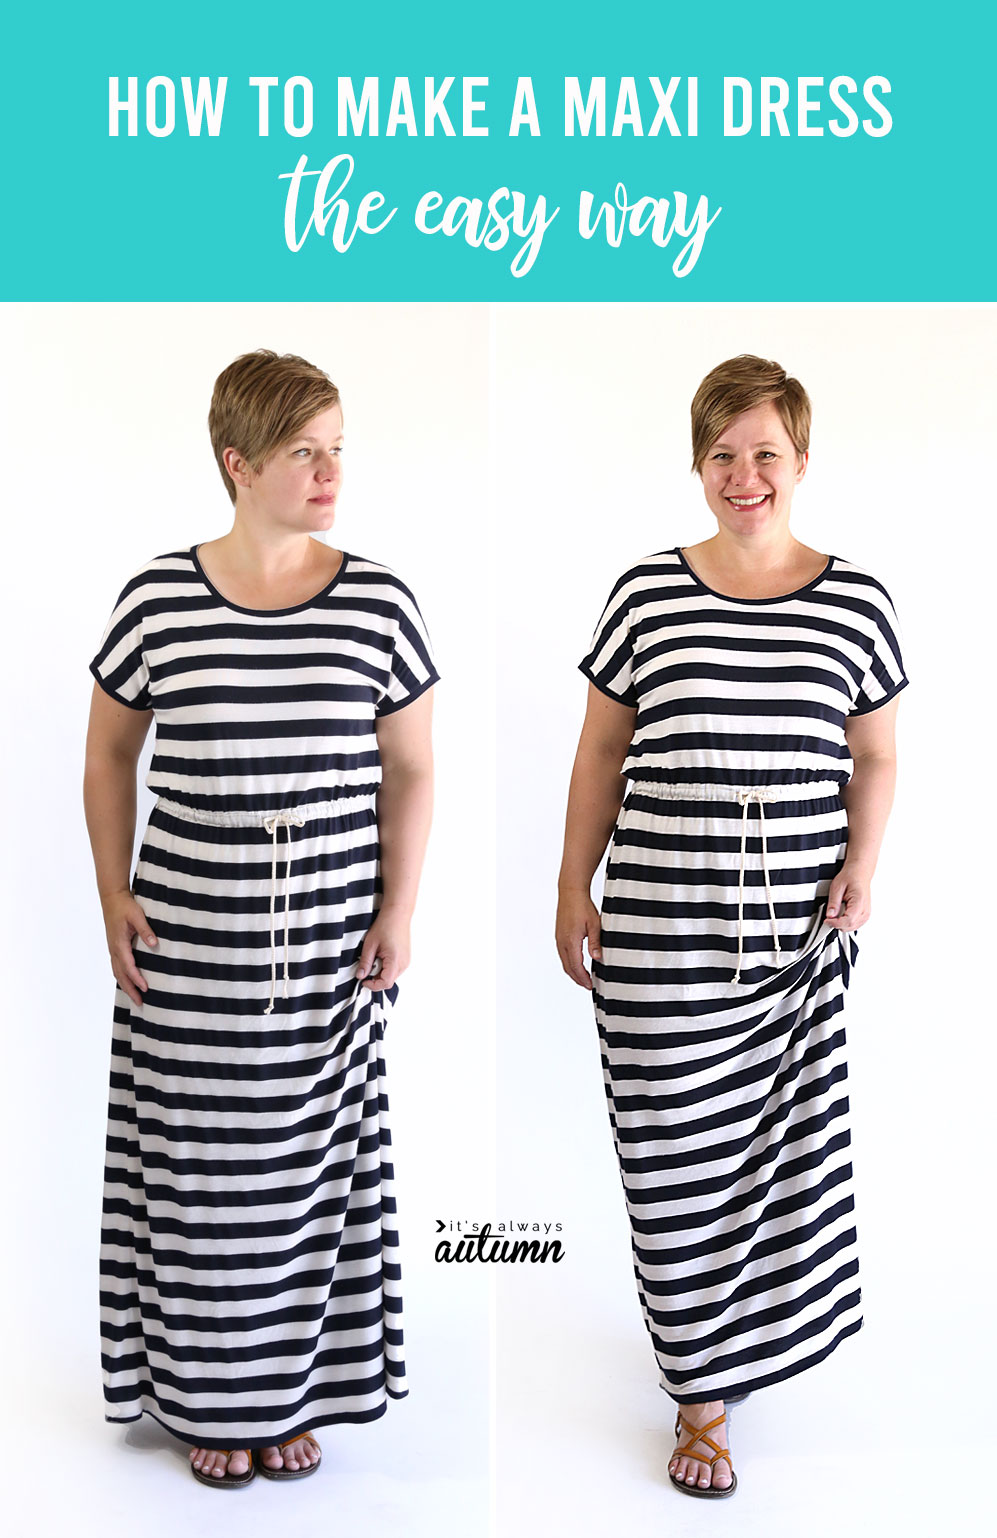 How to sew a maxi dress without a pattern. This is the easiest possible way to make a maxi dress!